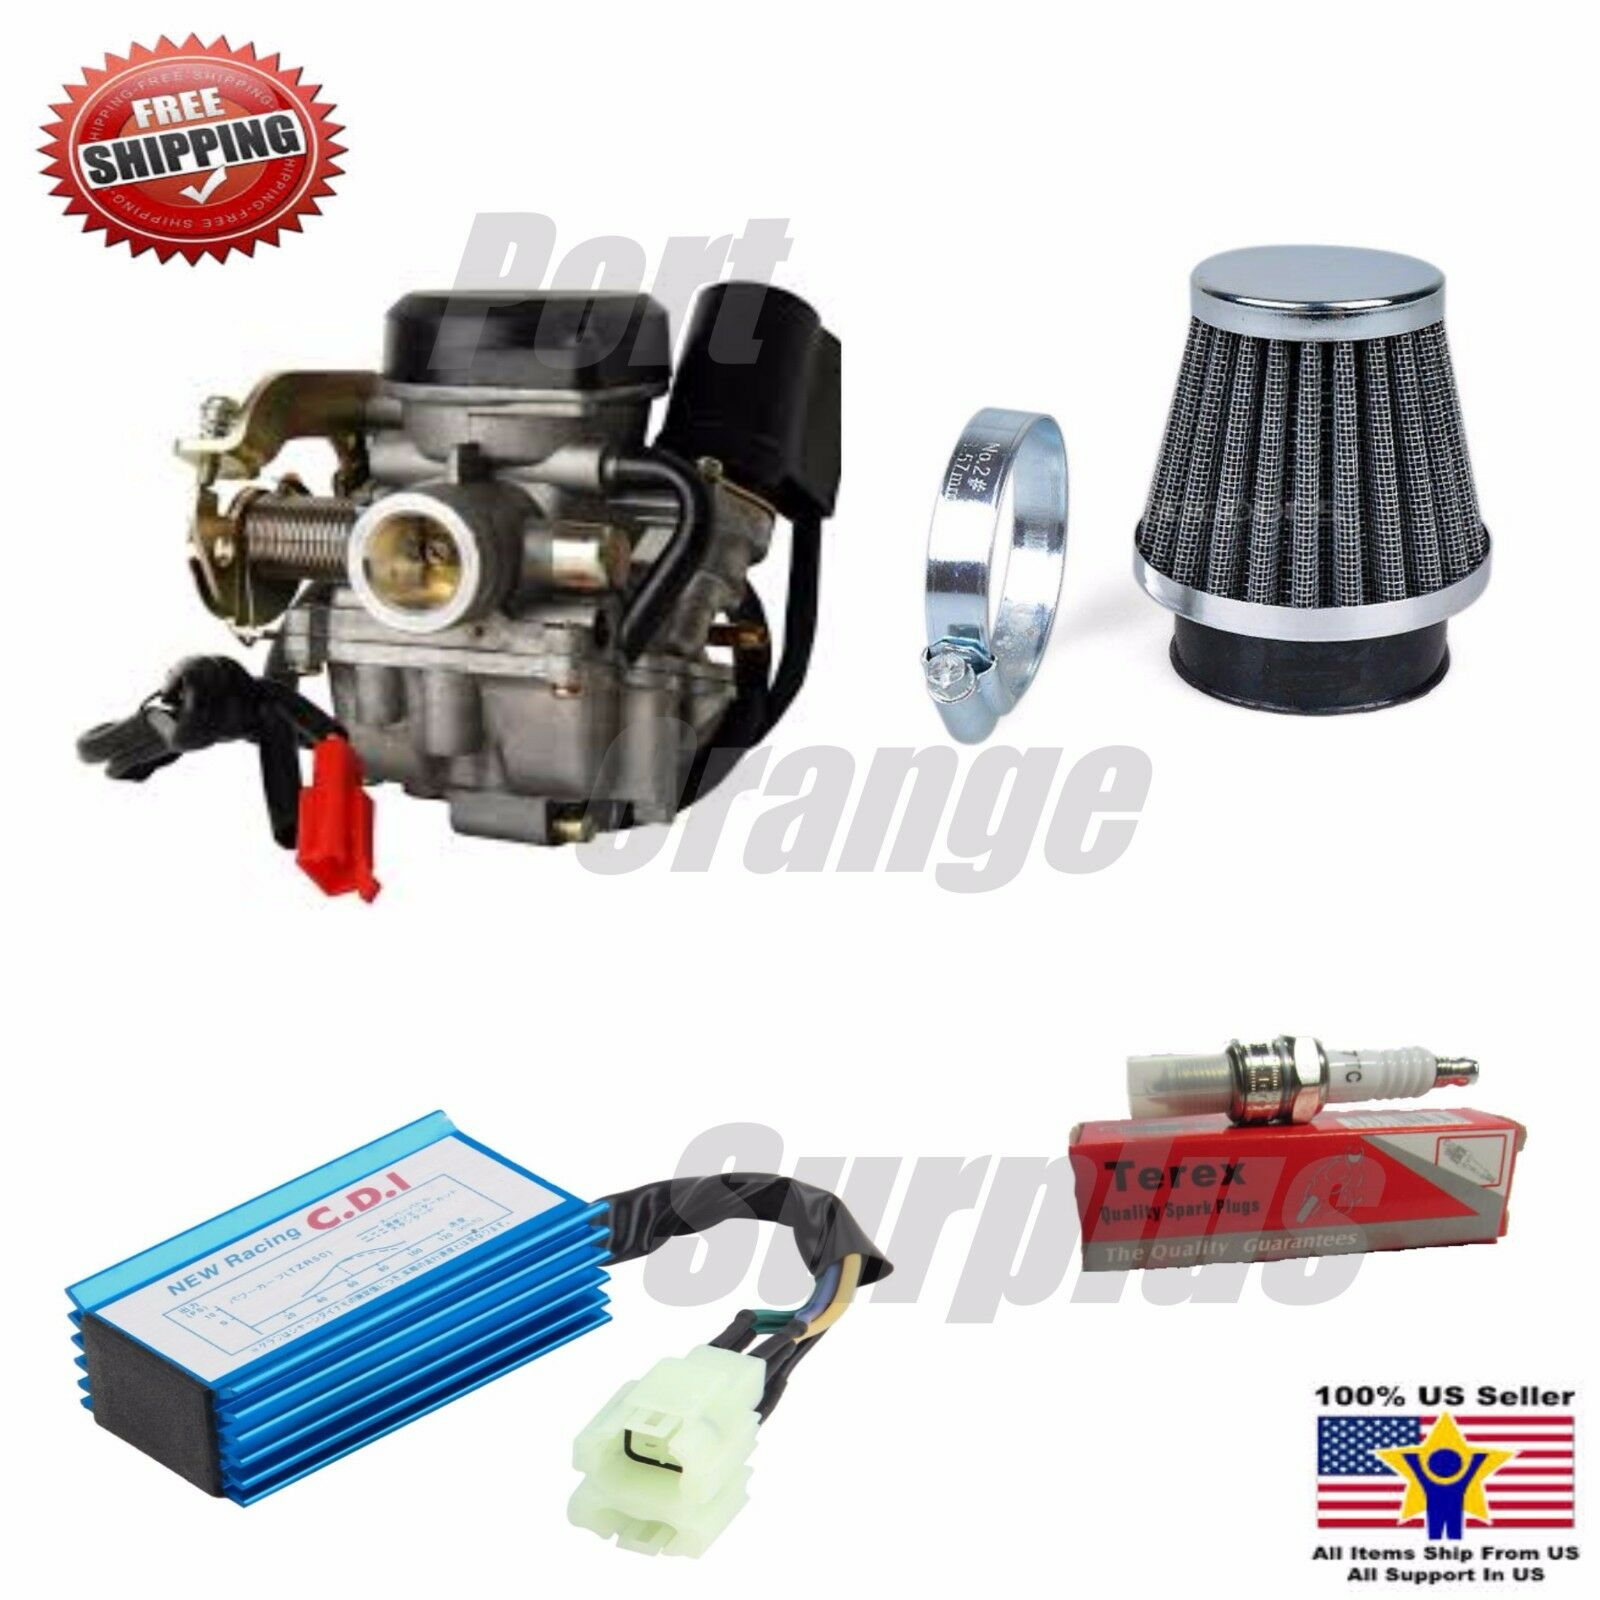 Details about PD19J Carb Gy6 60cc 50cc 49cc UPGRADE Performance Kit Air  Filter CDI Spark Plug